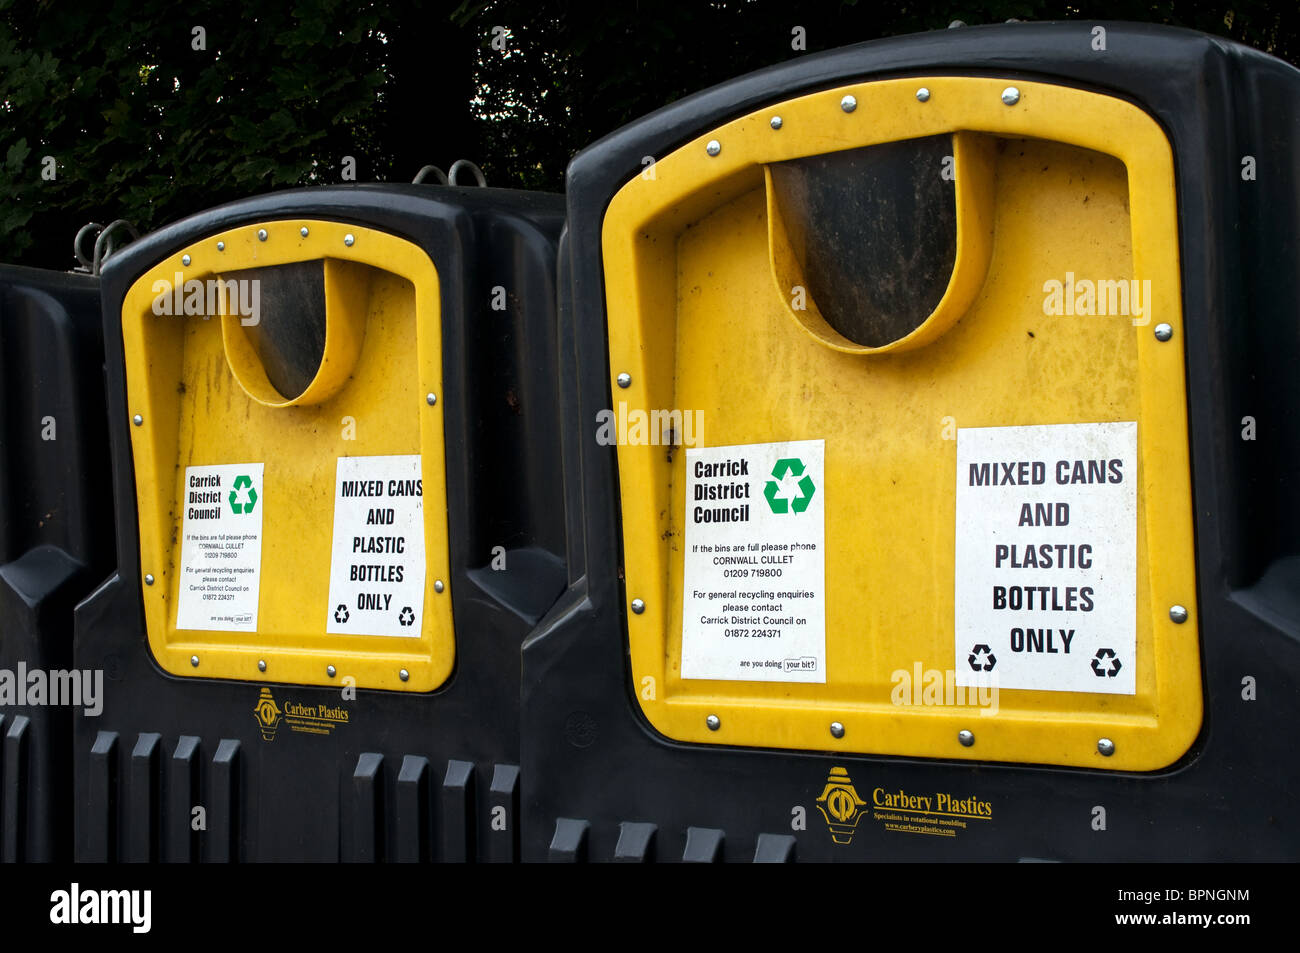 recycling bins for tin cans and plastic bottles, uk Stock Photo